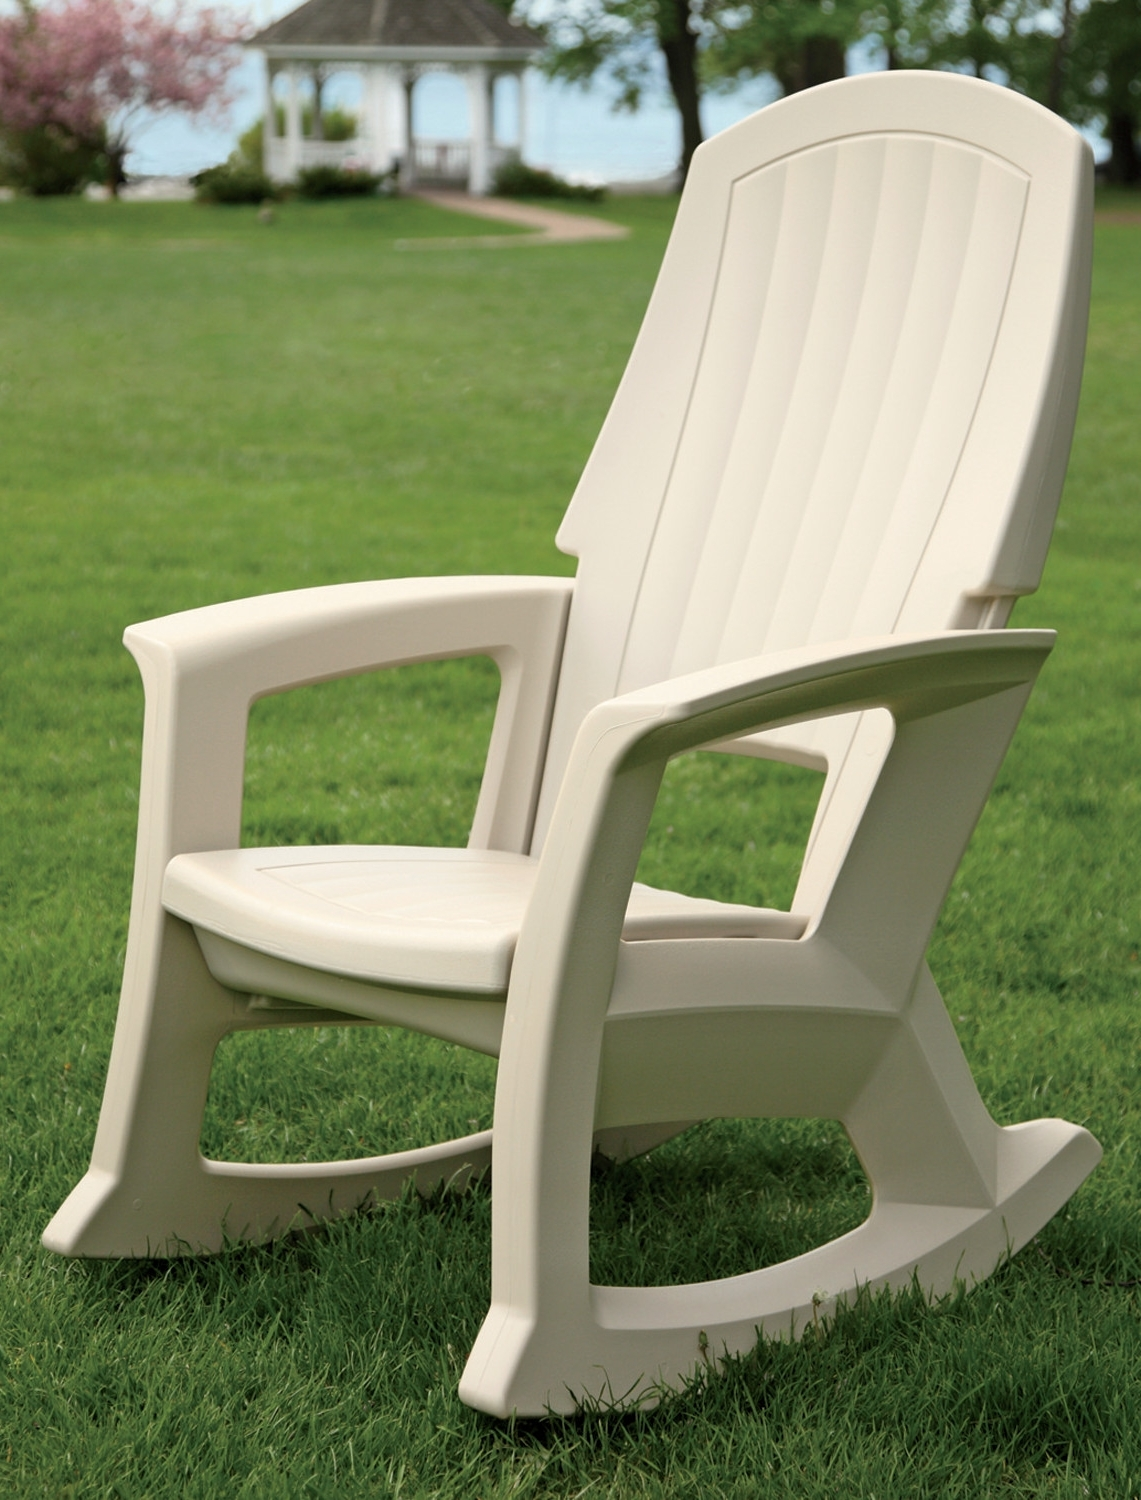 Oversized Patio Rocking Chairs Inside 2017 Patio Rocking Chair Oversized Outdoor Chairs Best For Small Nursery (View 7 of 15)